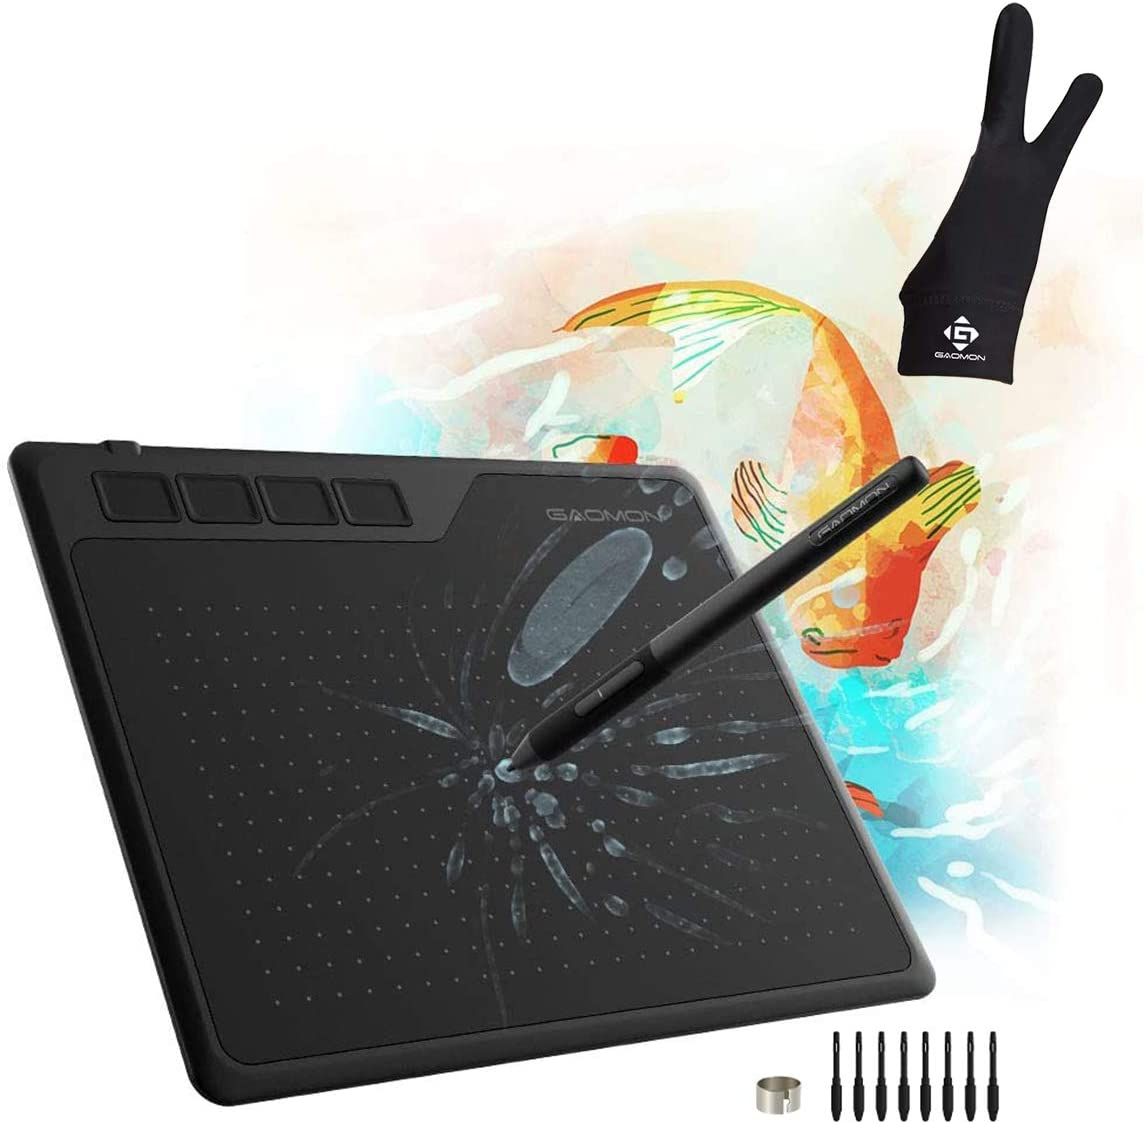 GAOMON S620 Pen Tablet & 2-Finger Gloves- Graphics Drawing Tablet for Digital Drawing/ 2D 3D Animation/Annotating Signing/ Online Tutoring